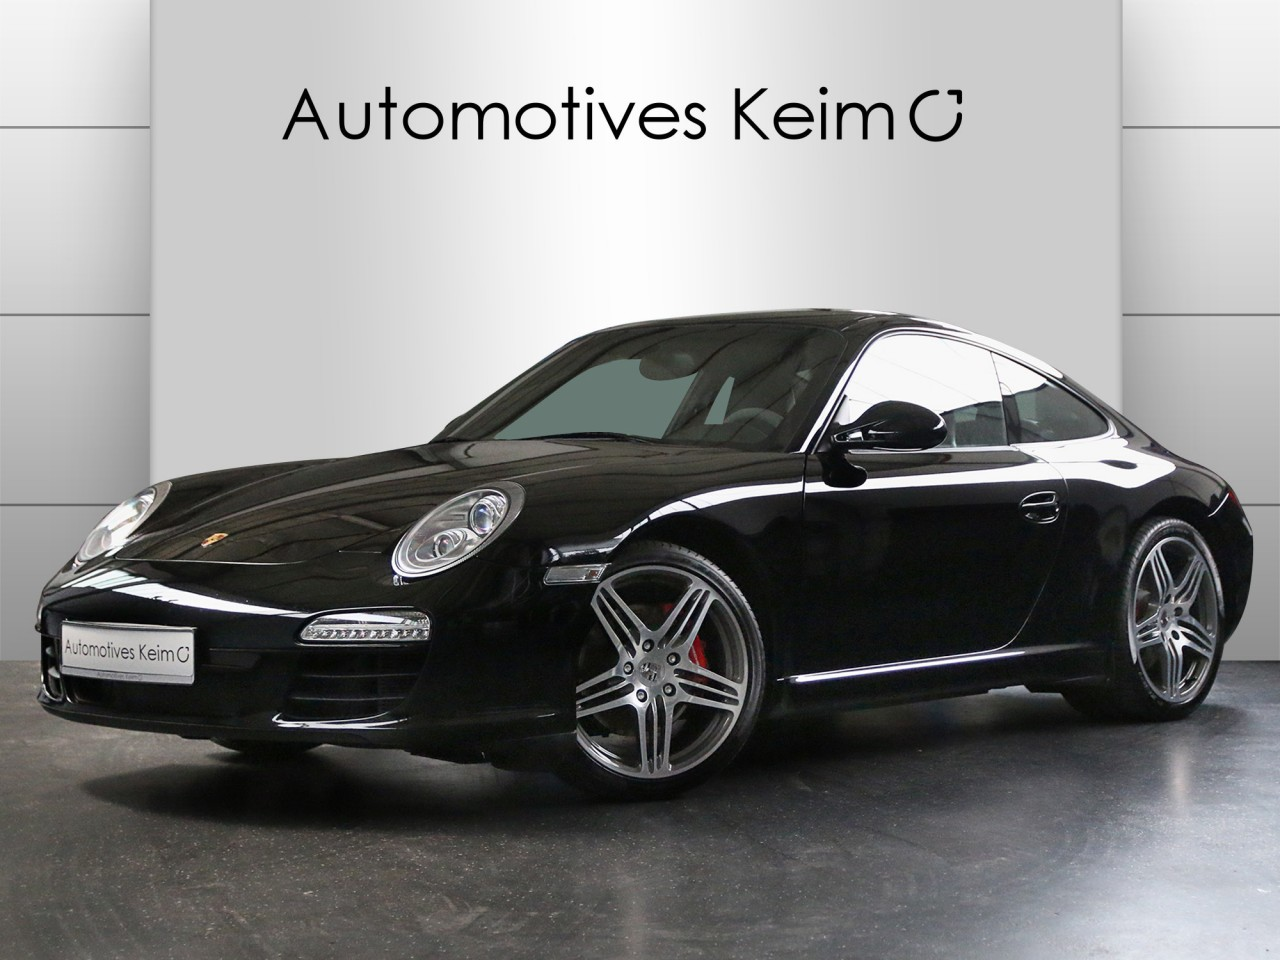 PORSCHE_911_997_Automotives_Keim_GmbH_63500_Seligenstadt_www.automotives-keim.de_oliver_keim_000081